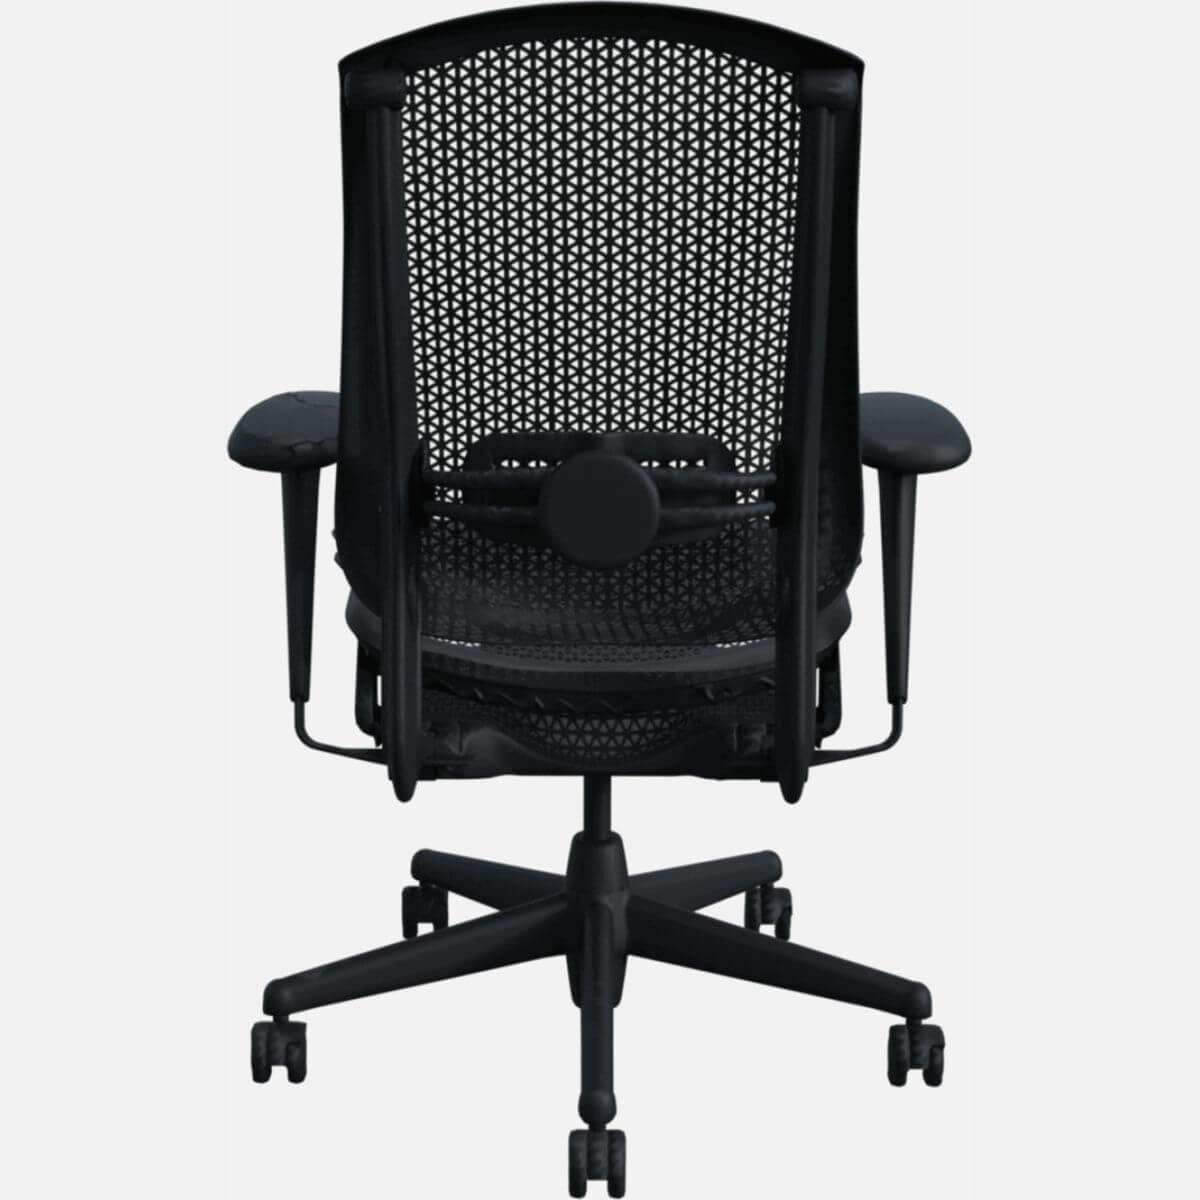 herman miller celle chair revolving in hindi free 3d model